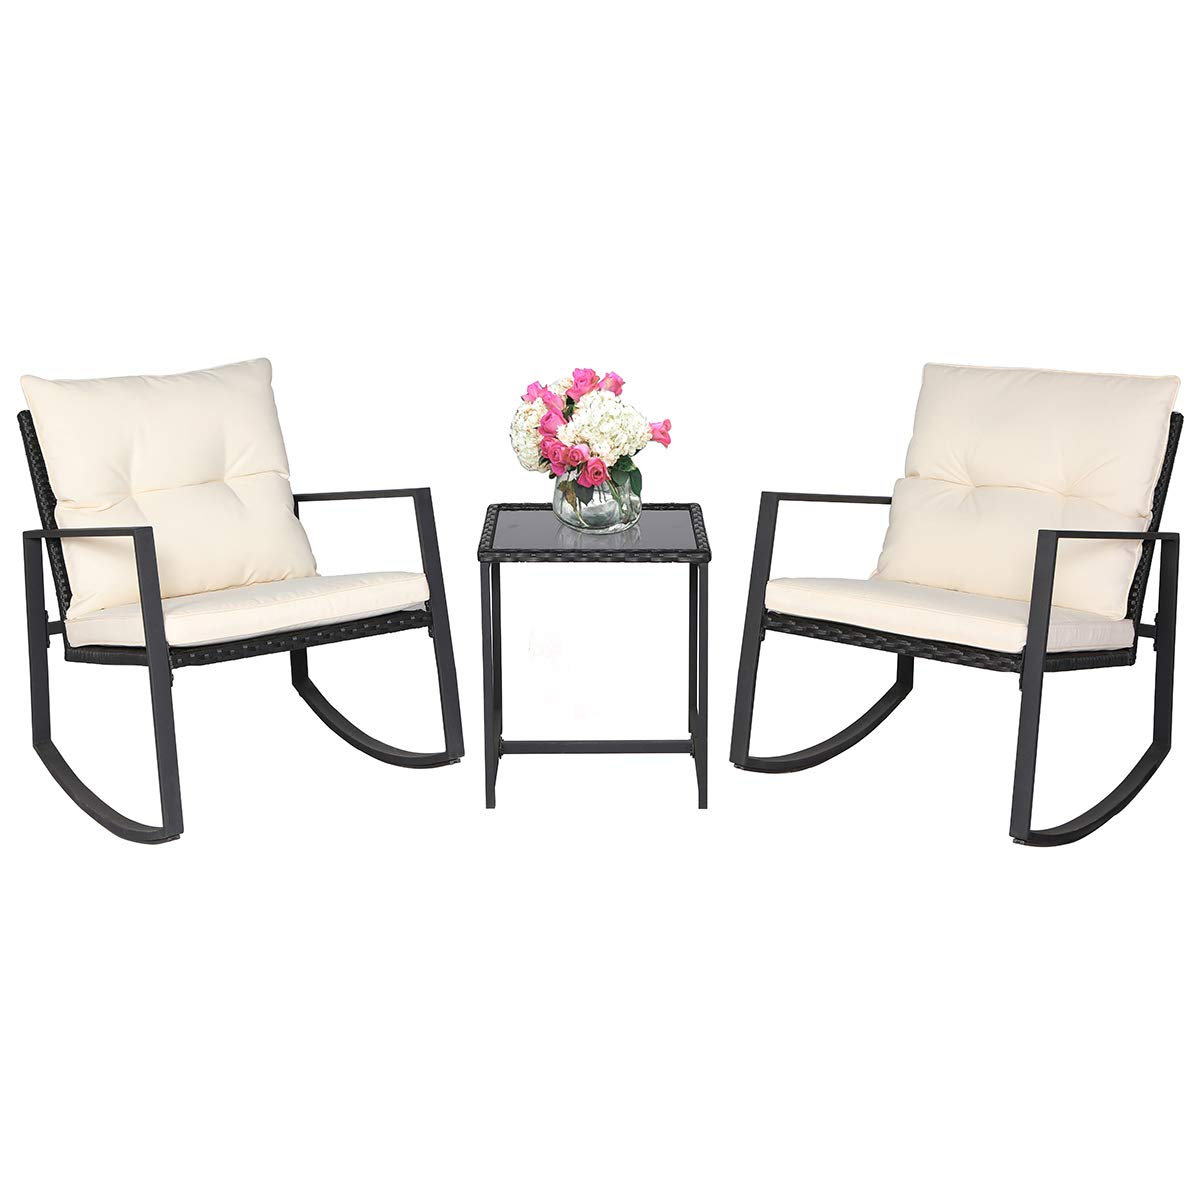 Suncrown outdoor 3 piece rocking wicker bistro set black wicker furniture two chairs with glass coffee table beige white cushion